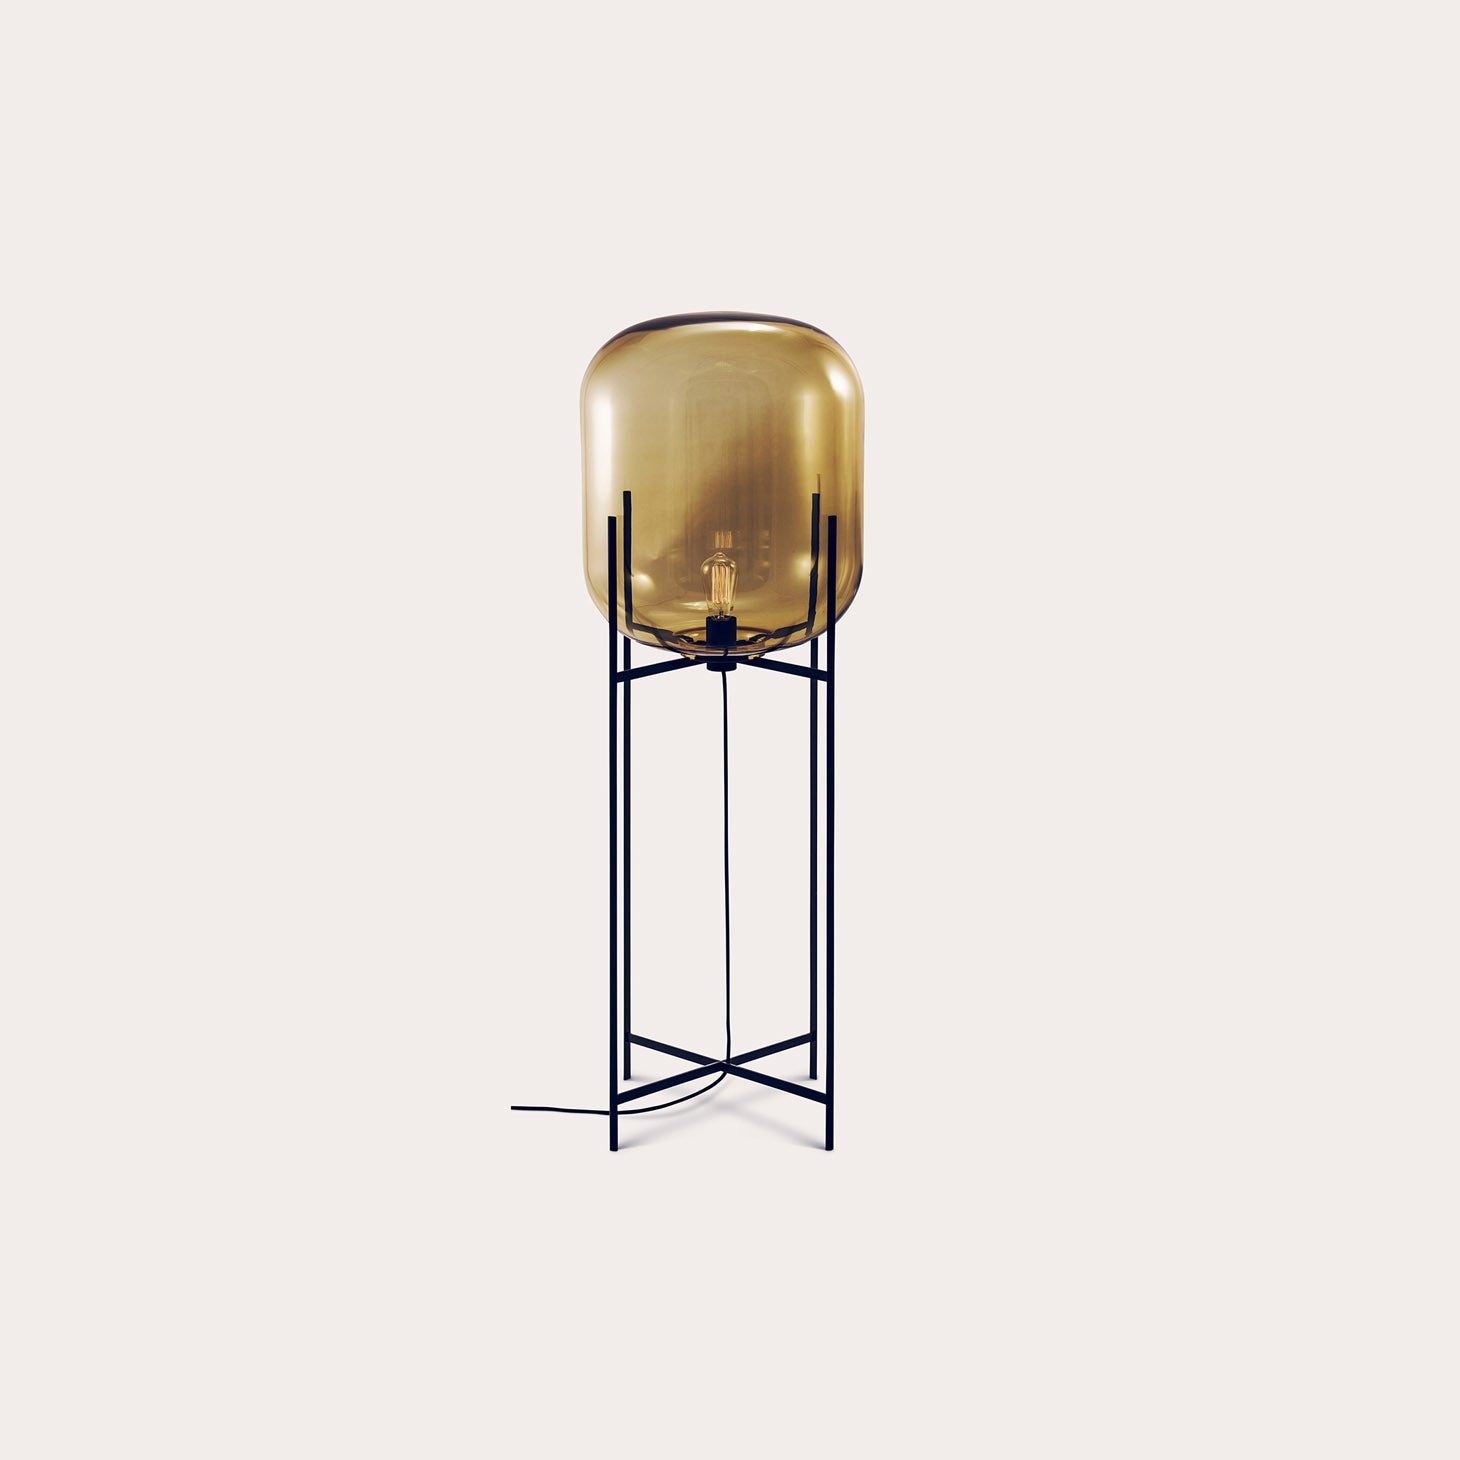 Oda Lighting Sebastian Herkner Designer Furniture Sku: 747-160-10002